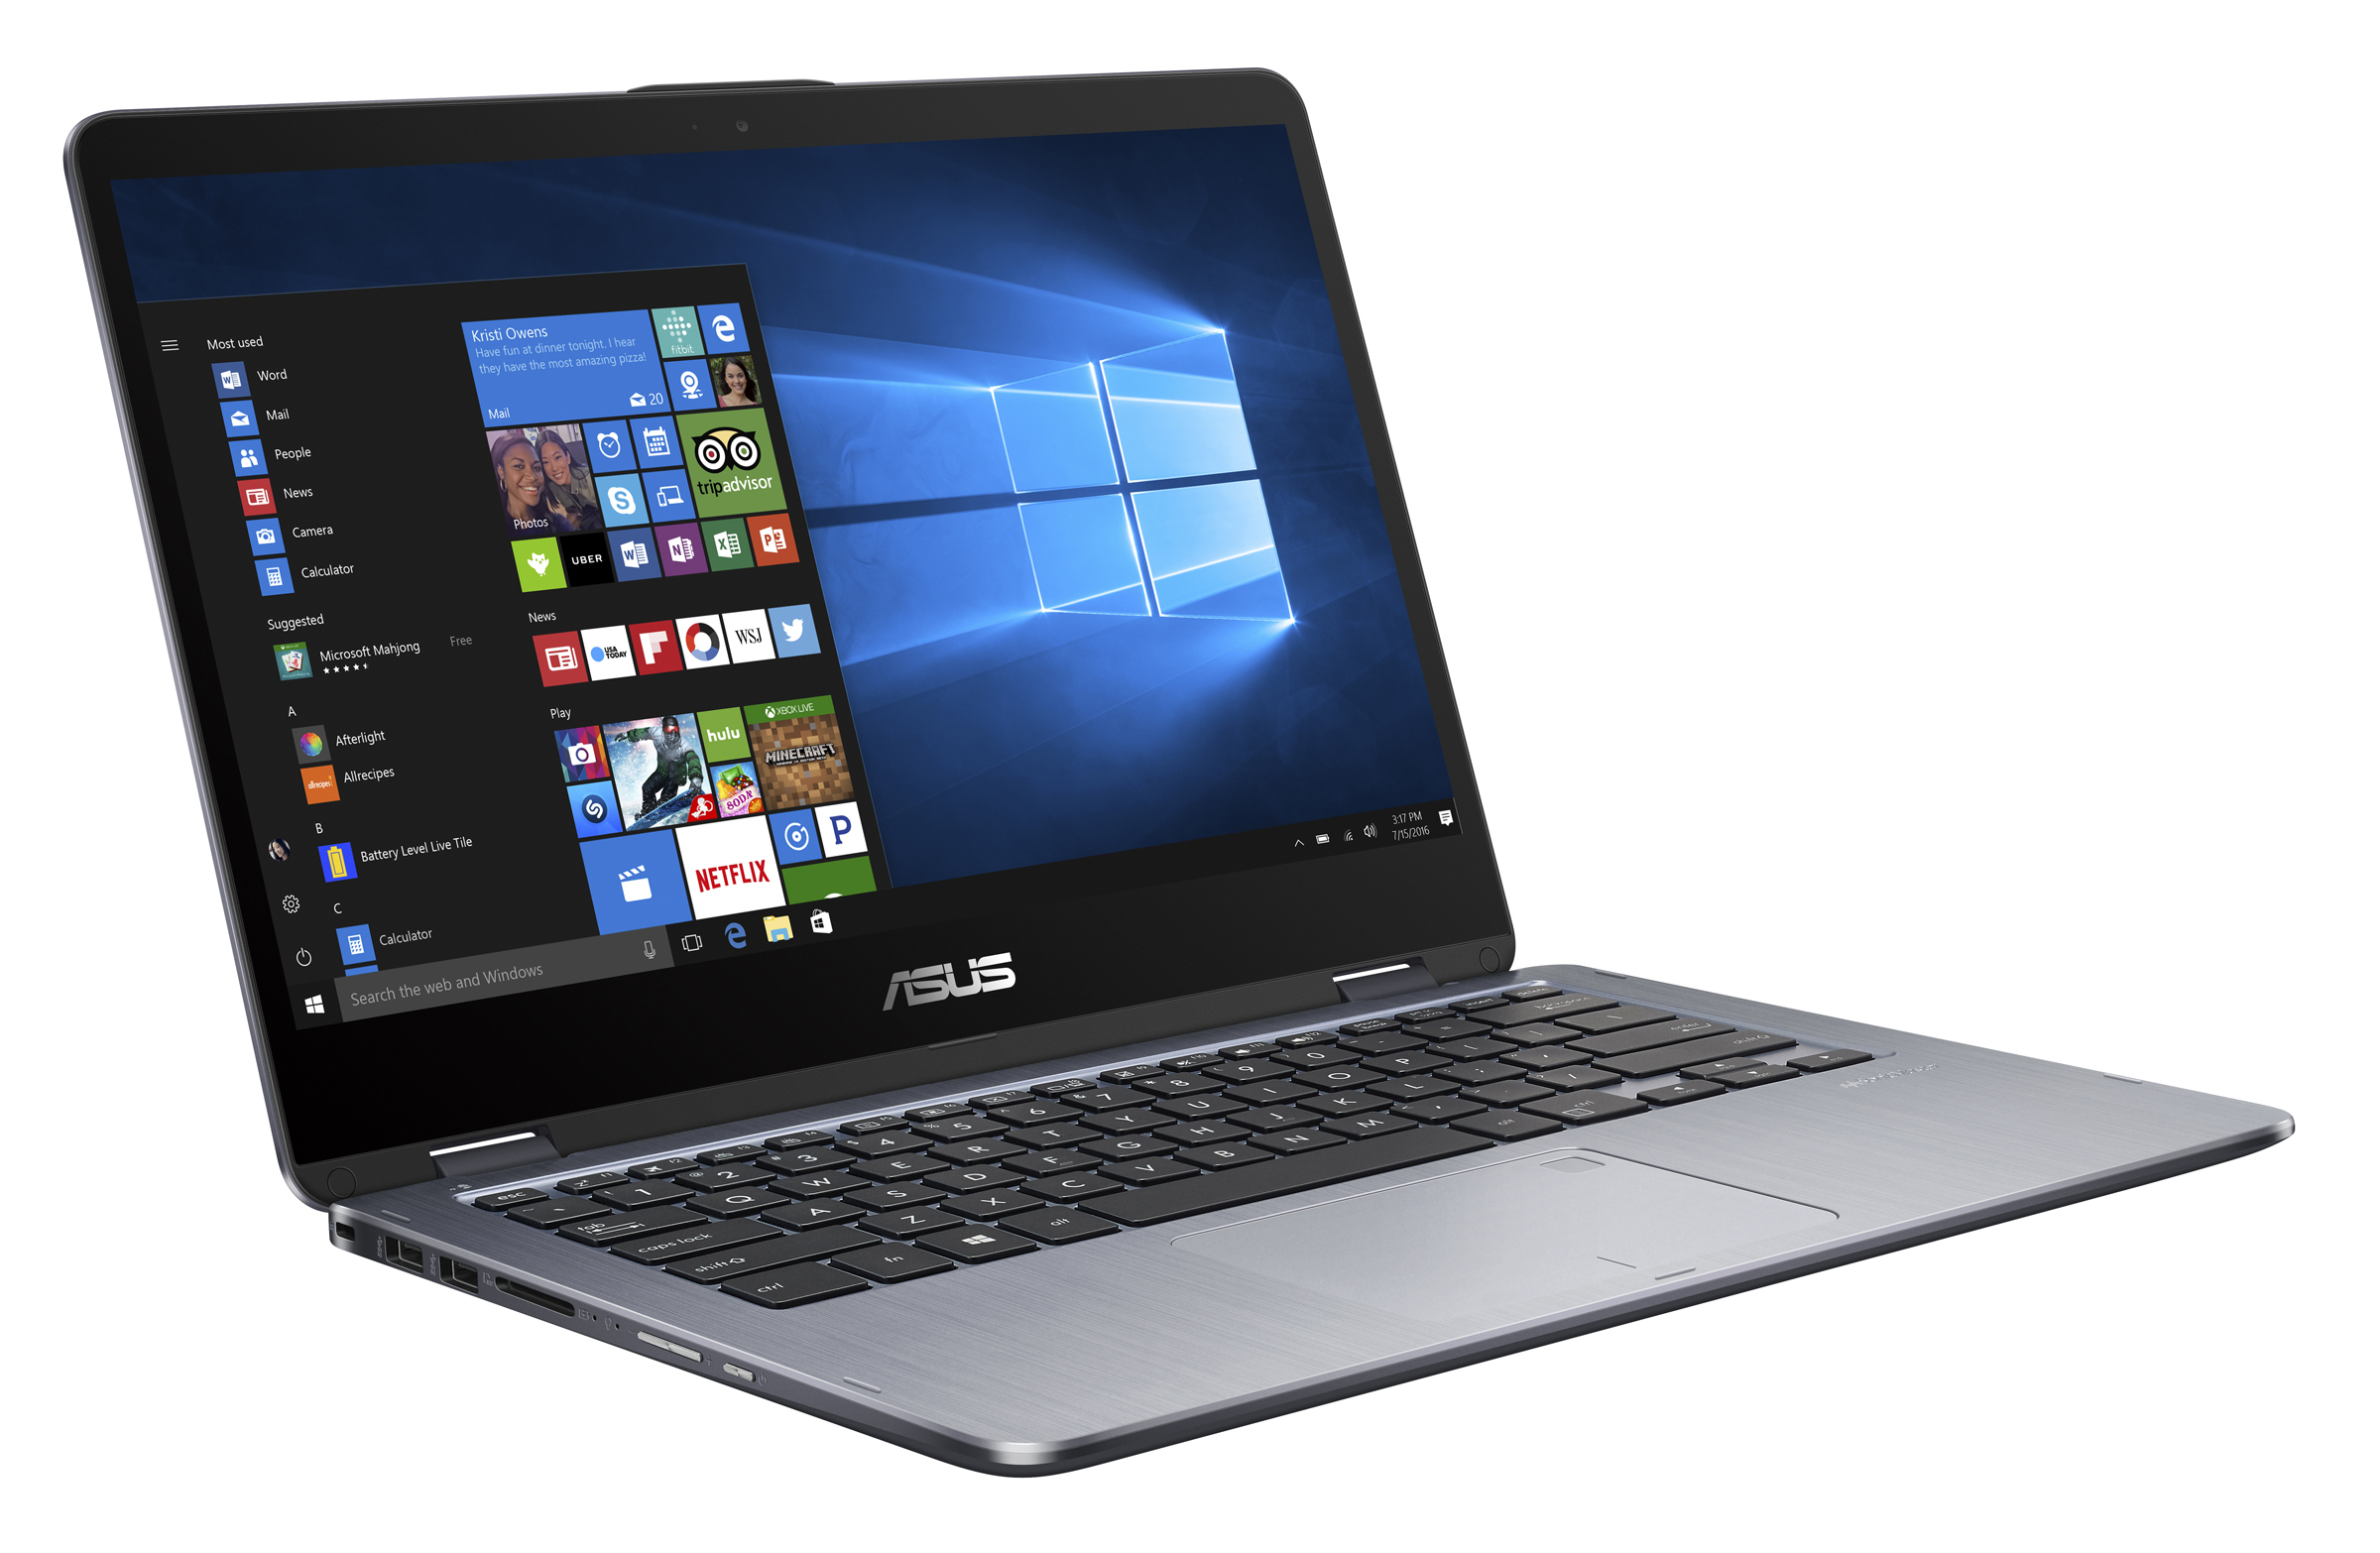 LAPTOP ASUS REPAIR SERVICE